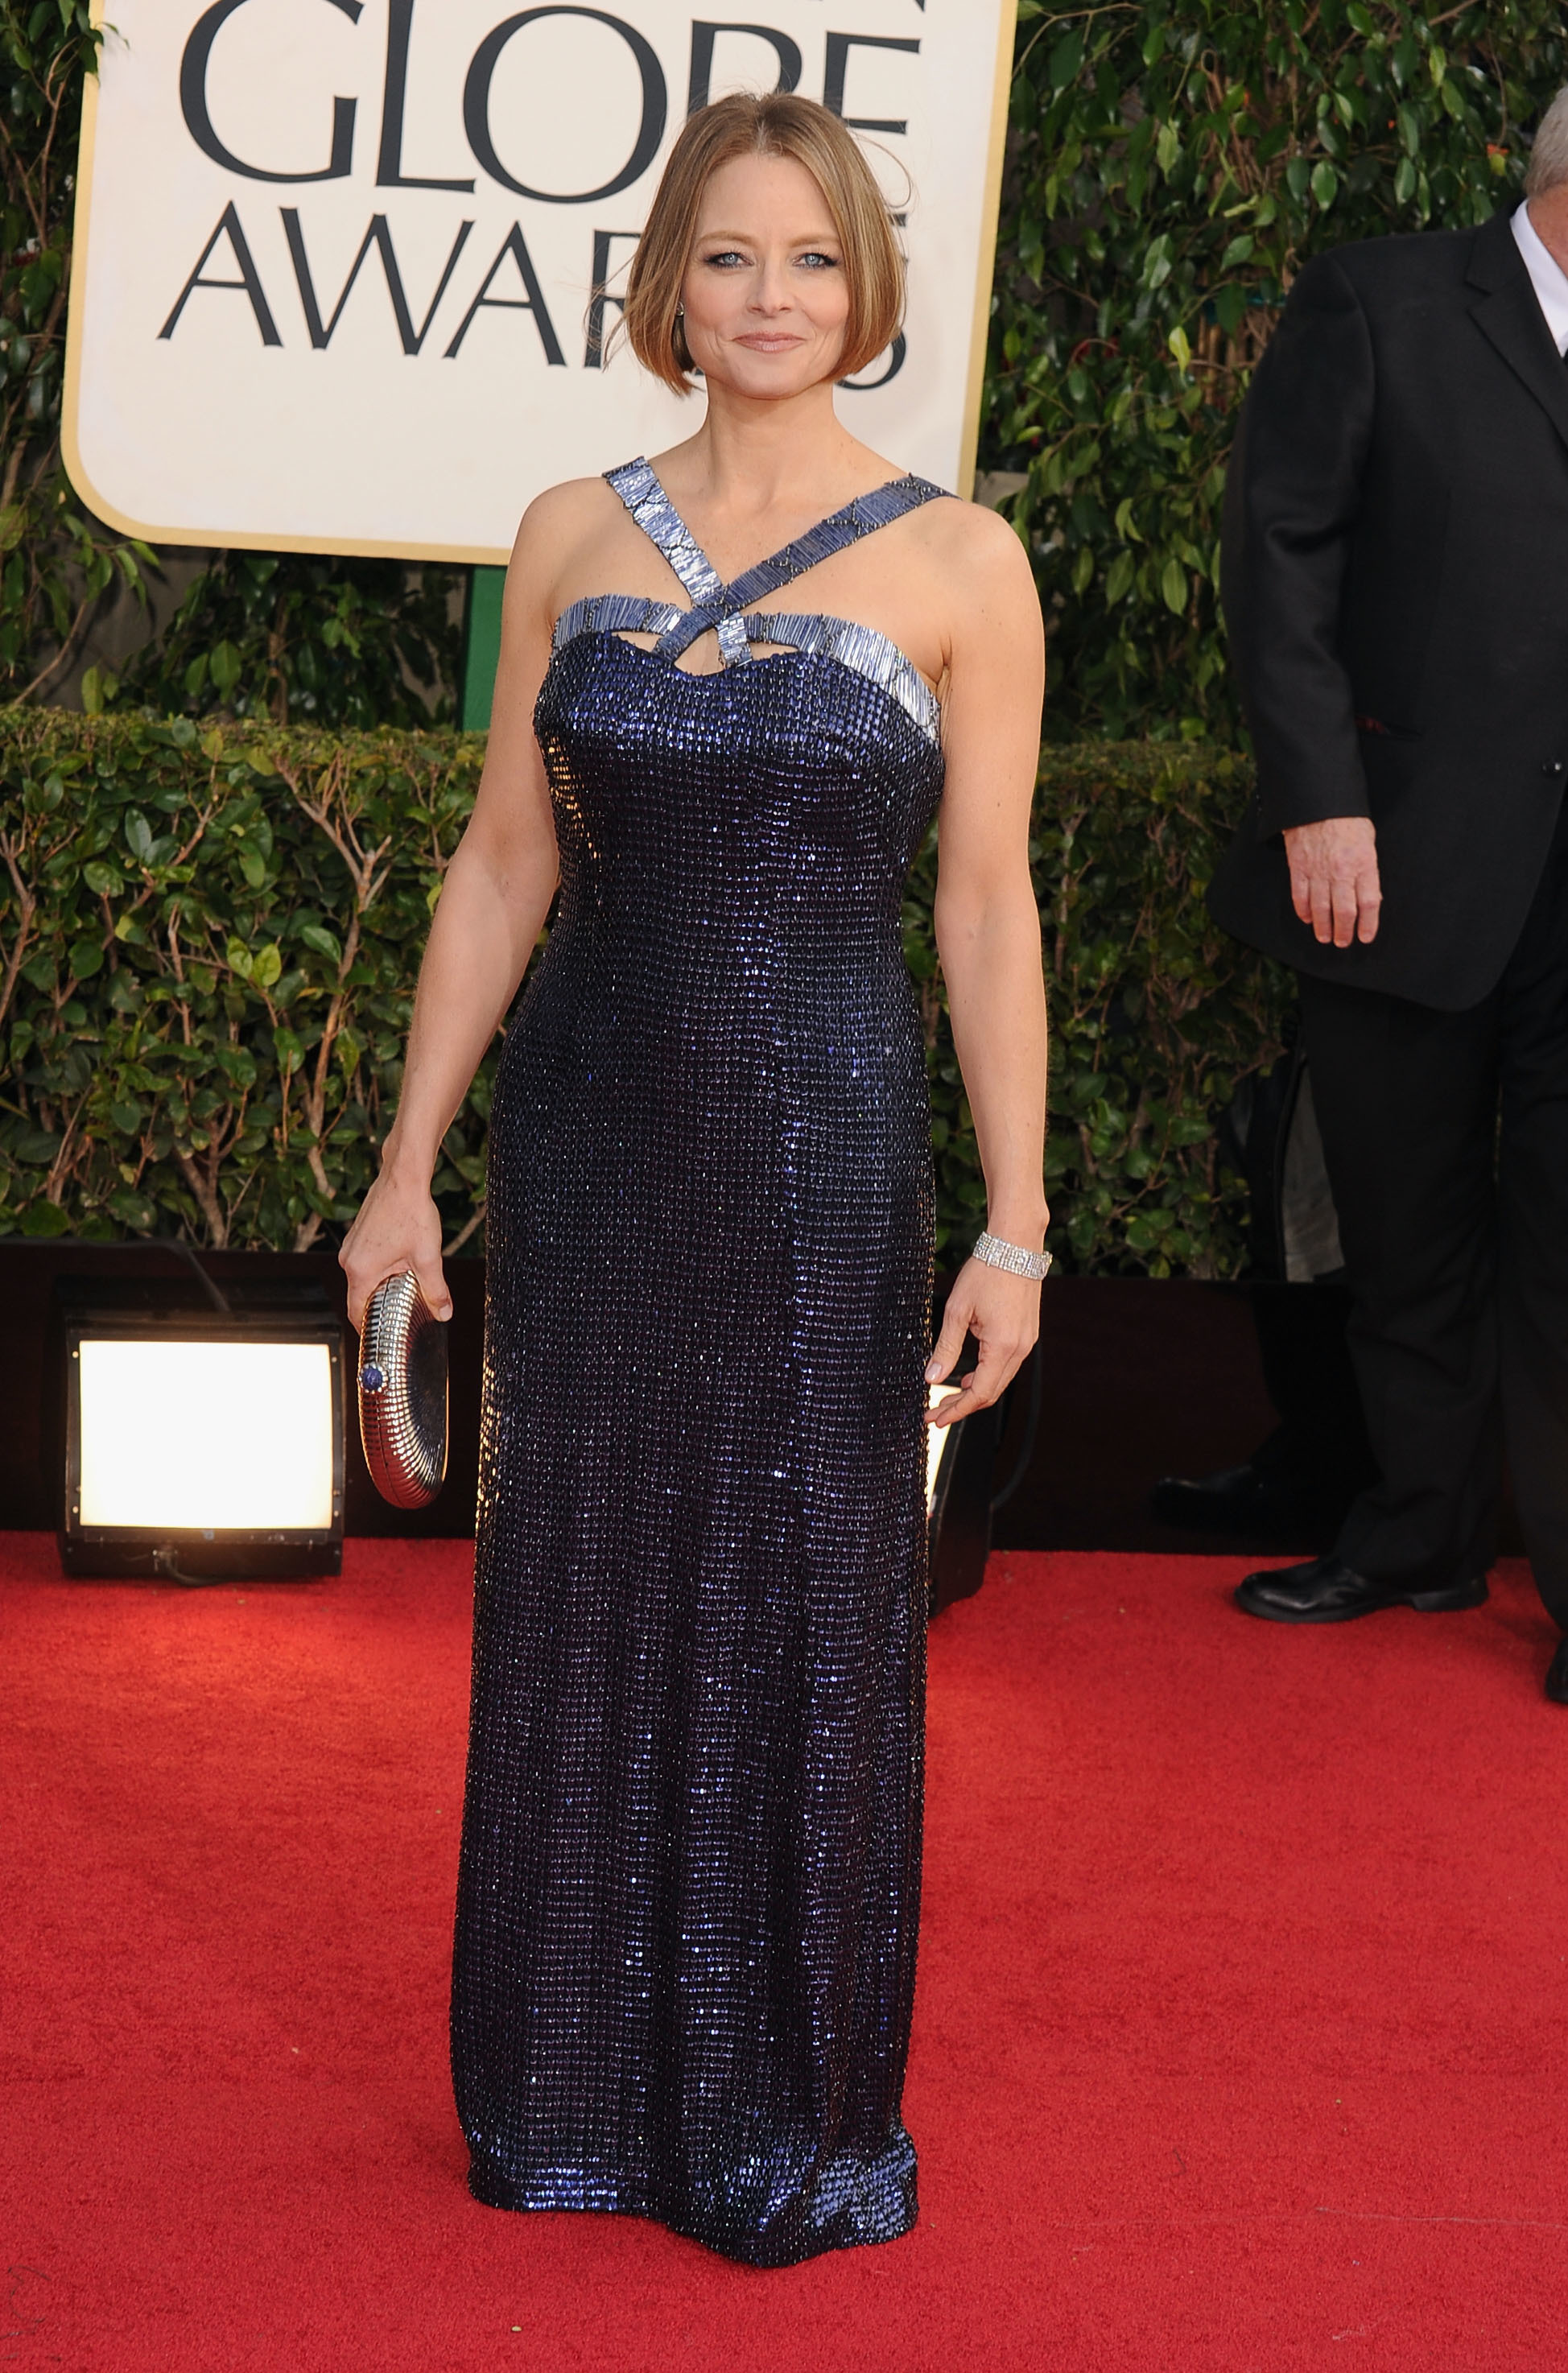 jodi foster gay coming out golden globes 2013